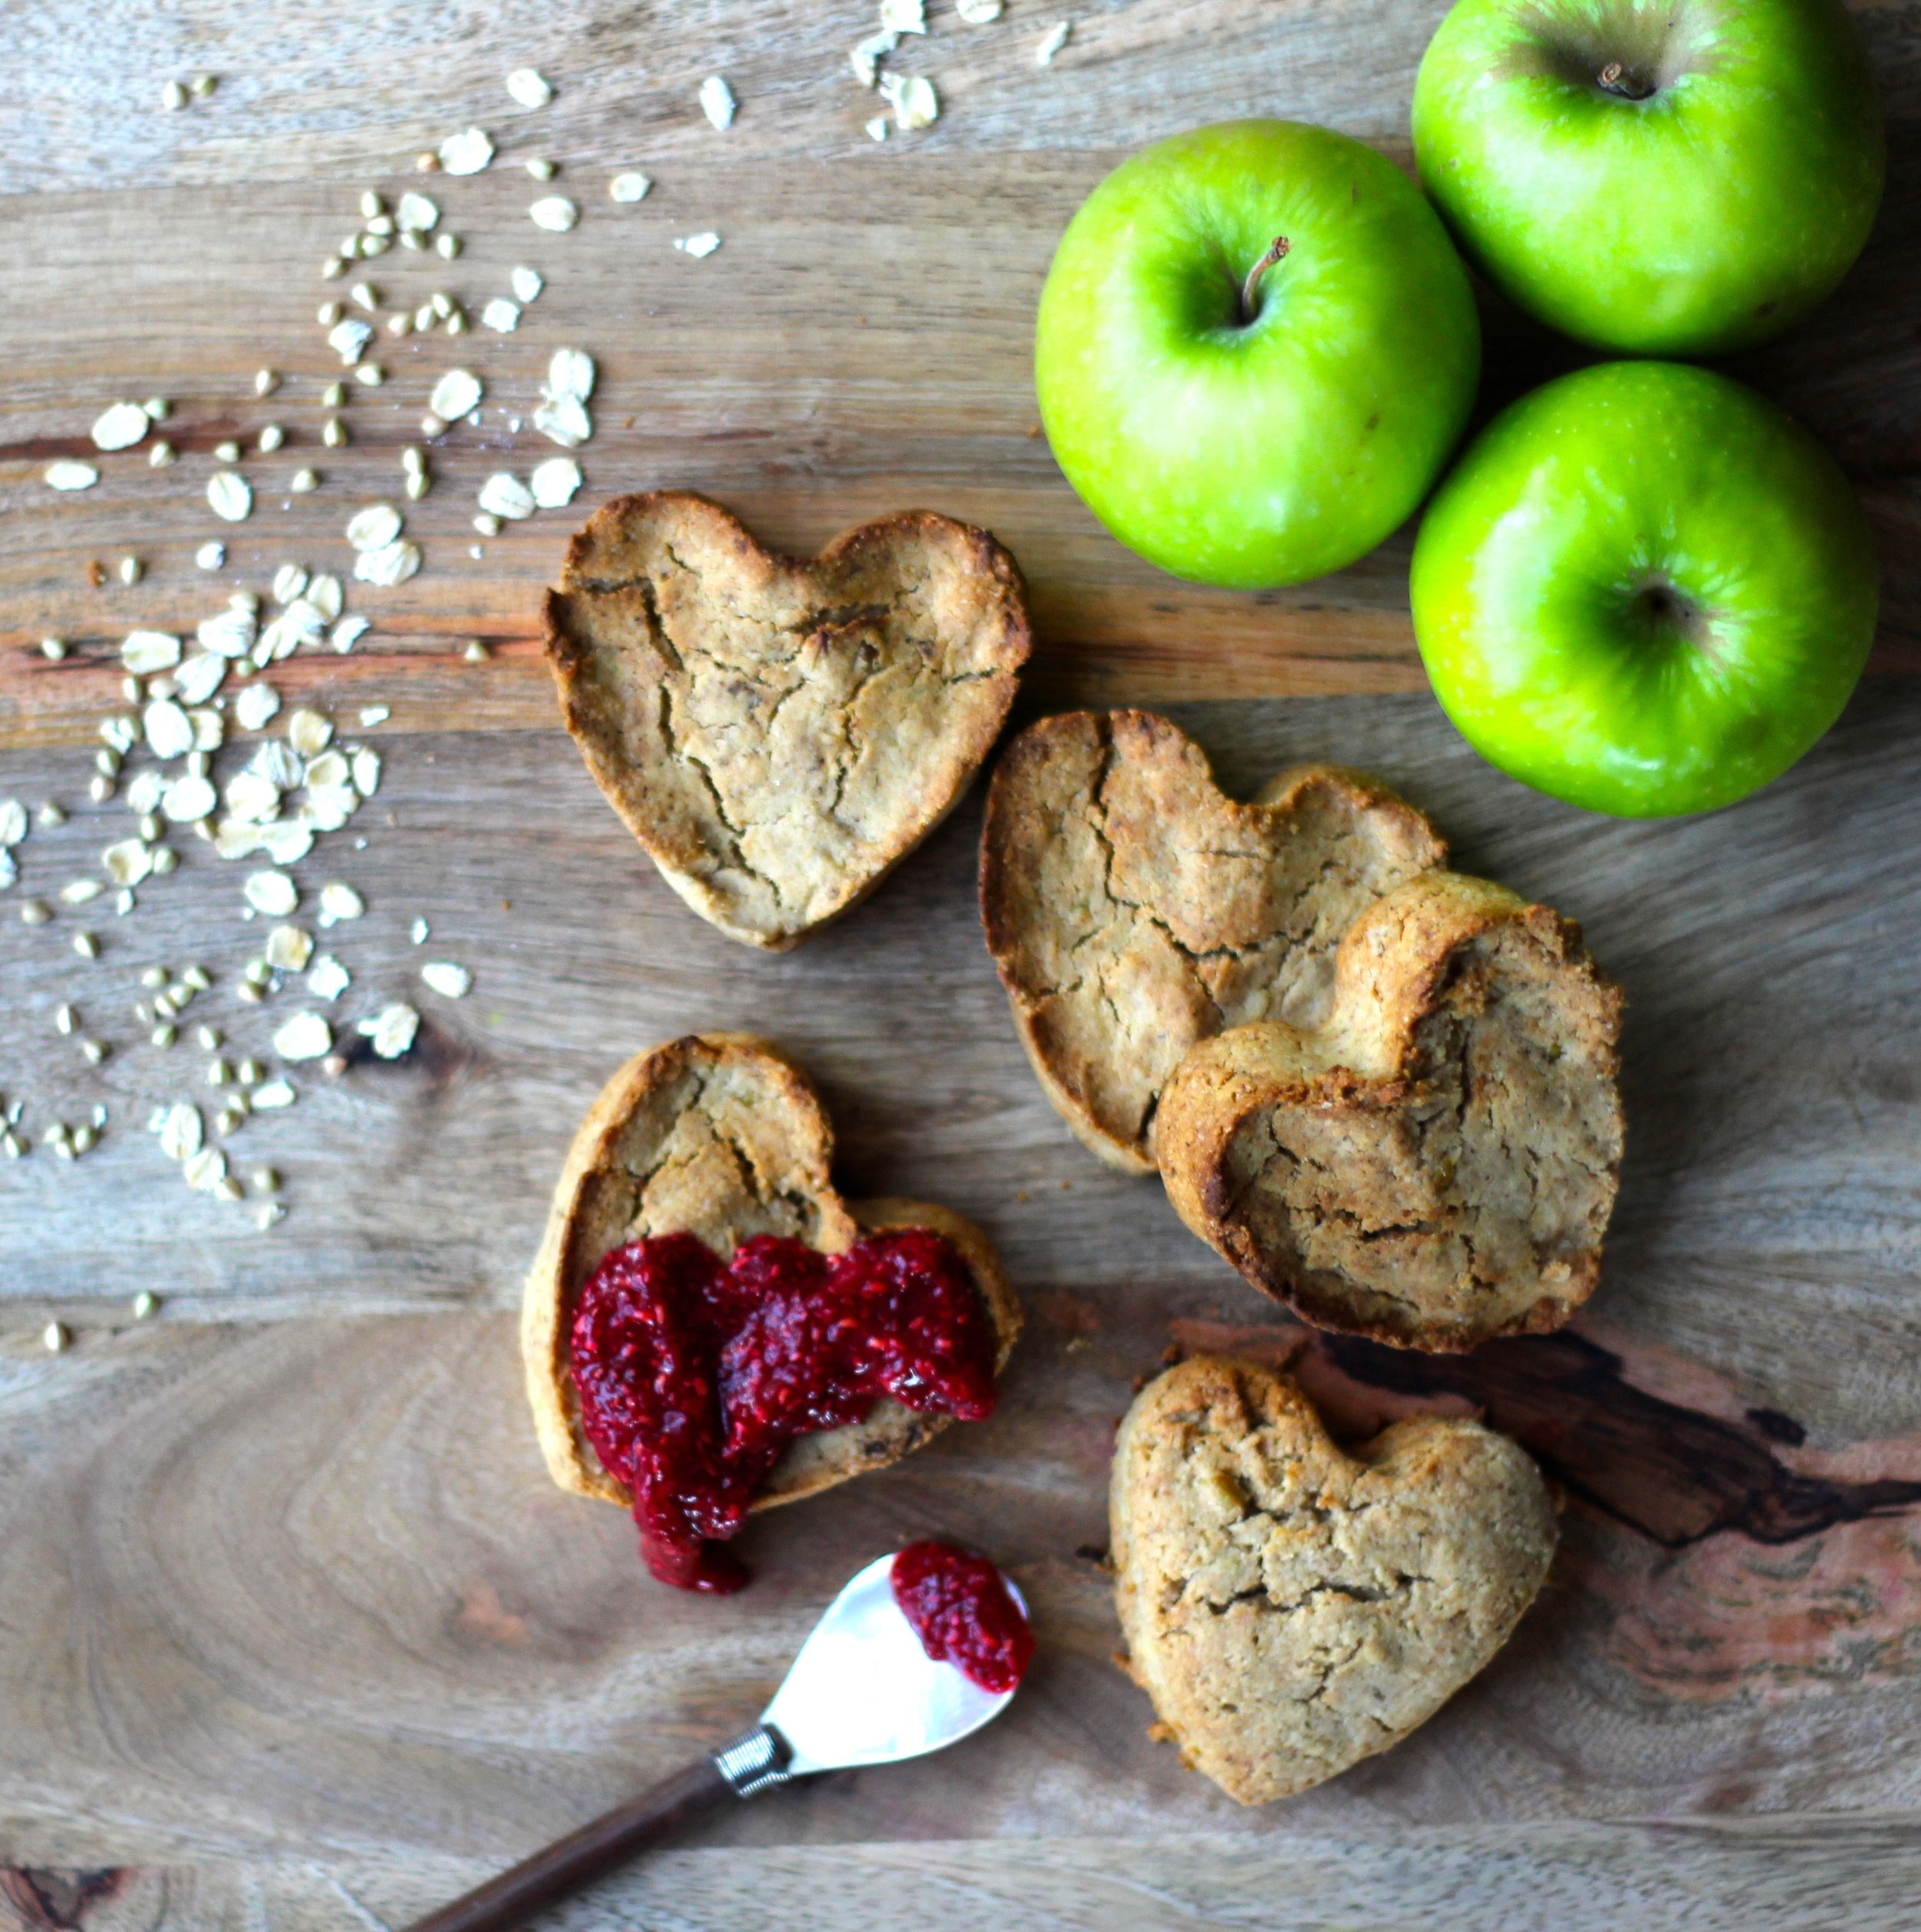 Berry Chia Jam with Apple & Oat Cakes